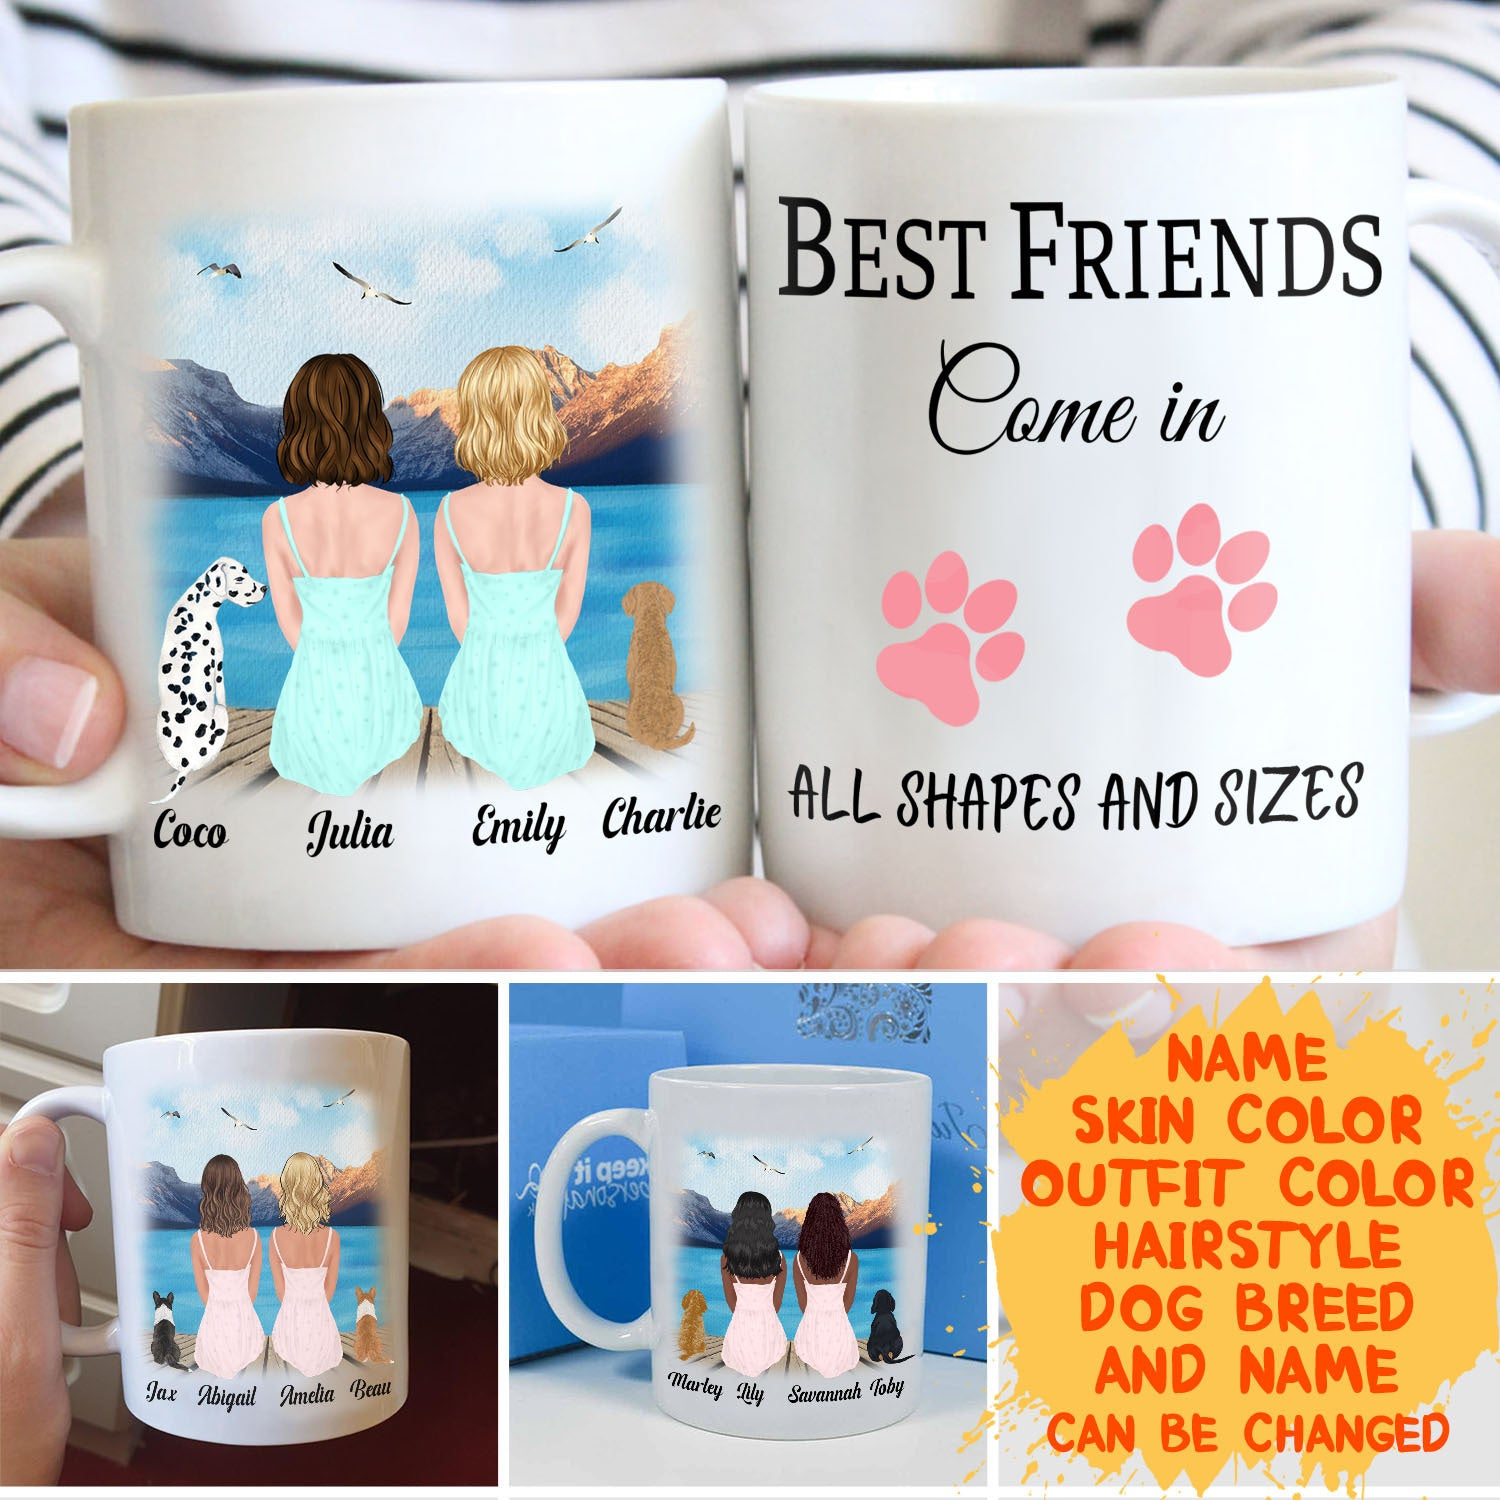 Best Friends Come in All Shapes and Sizes - Personalized Custom Coffee Mug